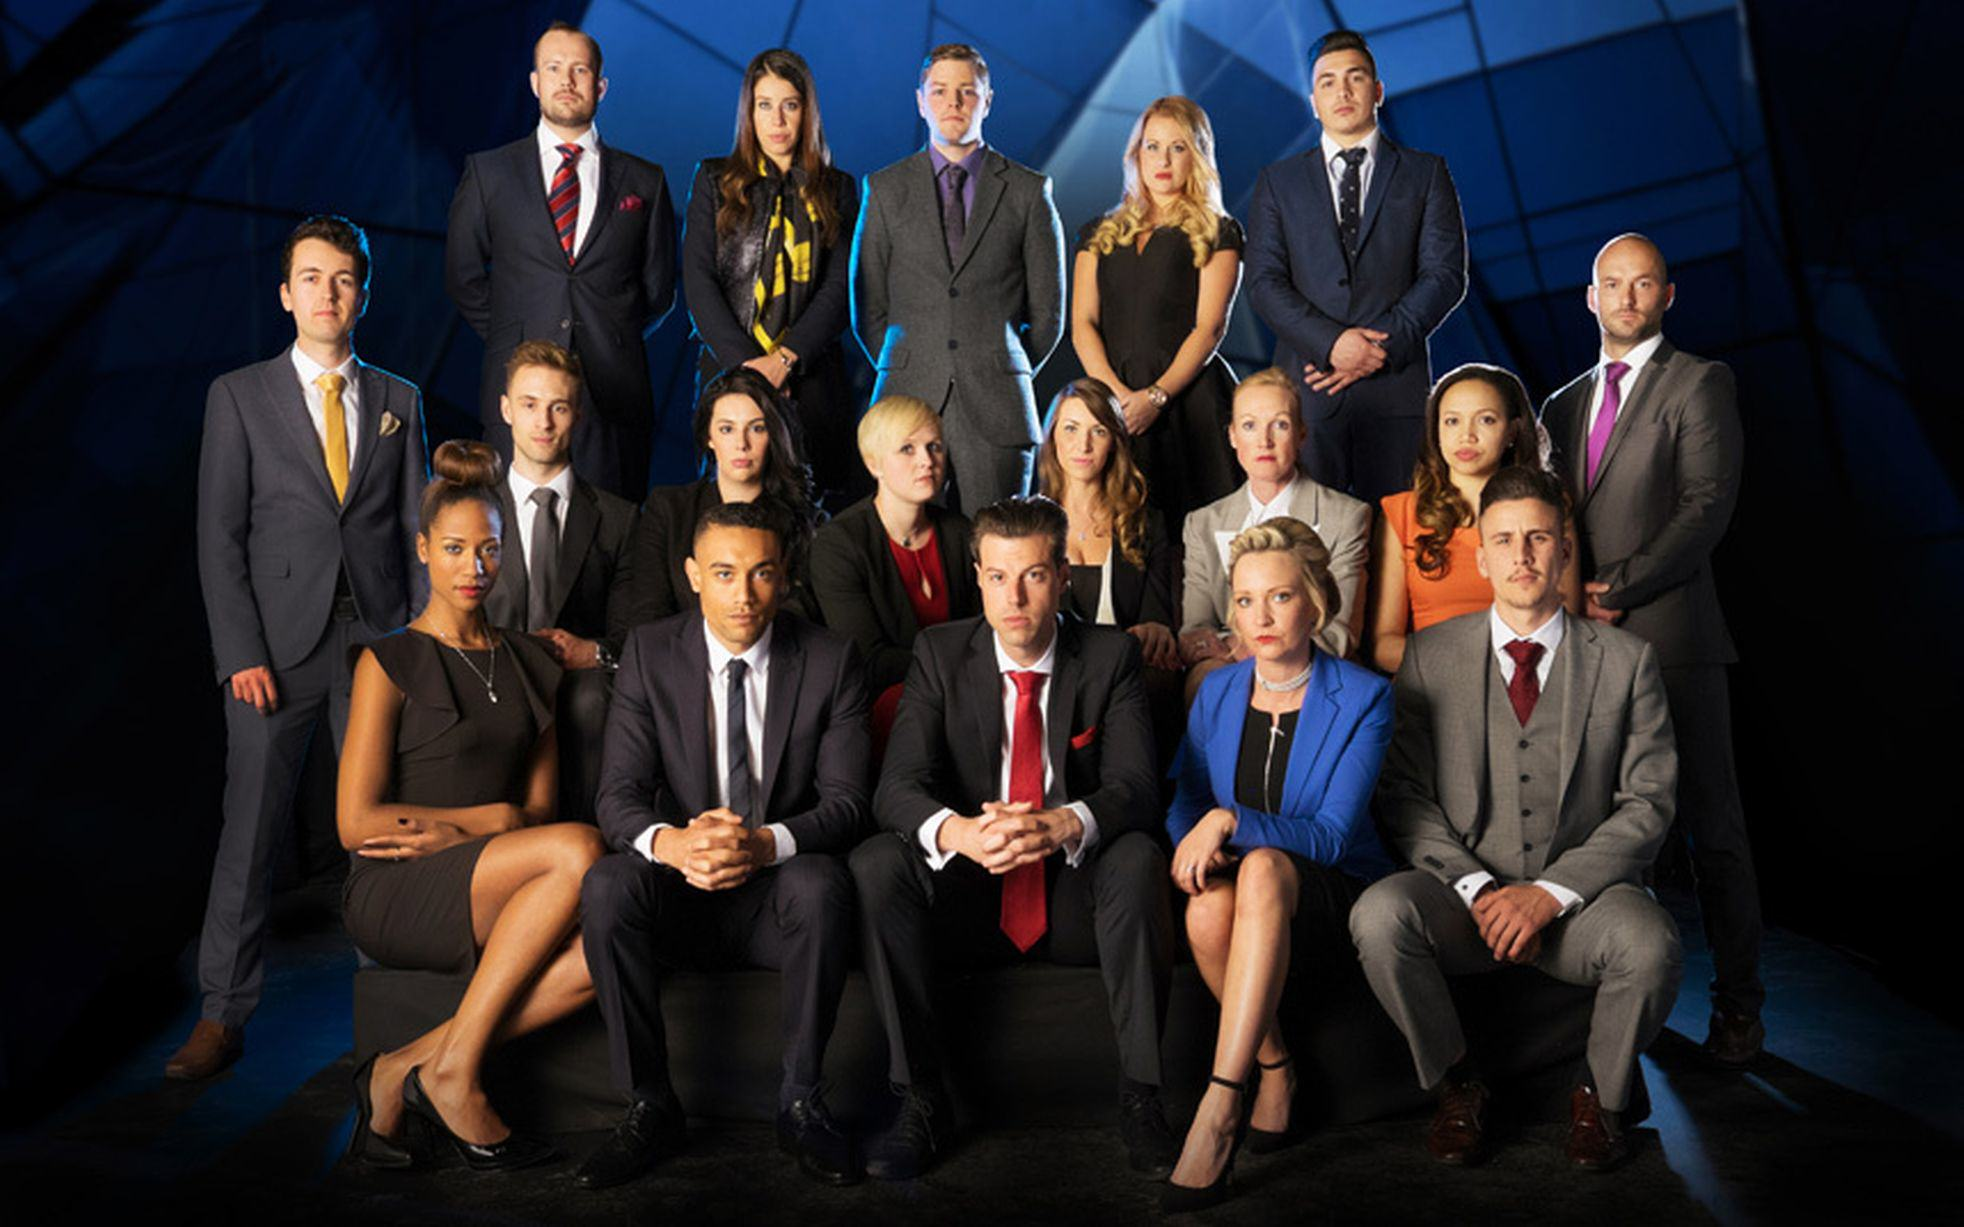 apprentice group 3459892k Apprentice Star Describes Himself As F*cking Player And Details Orgy With Female Contestant